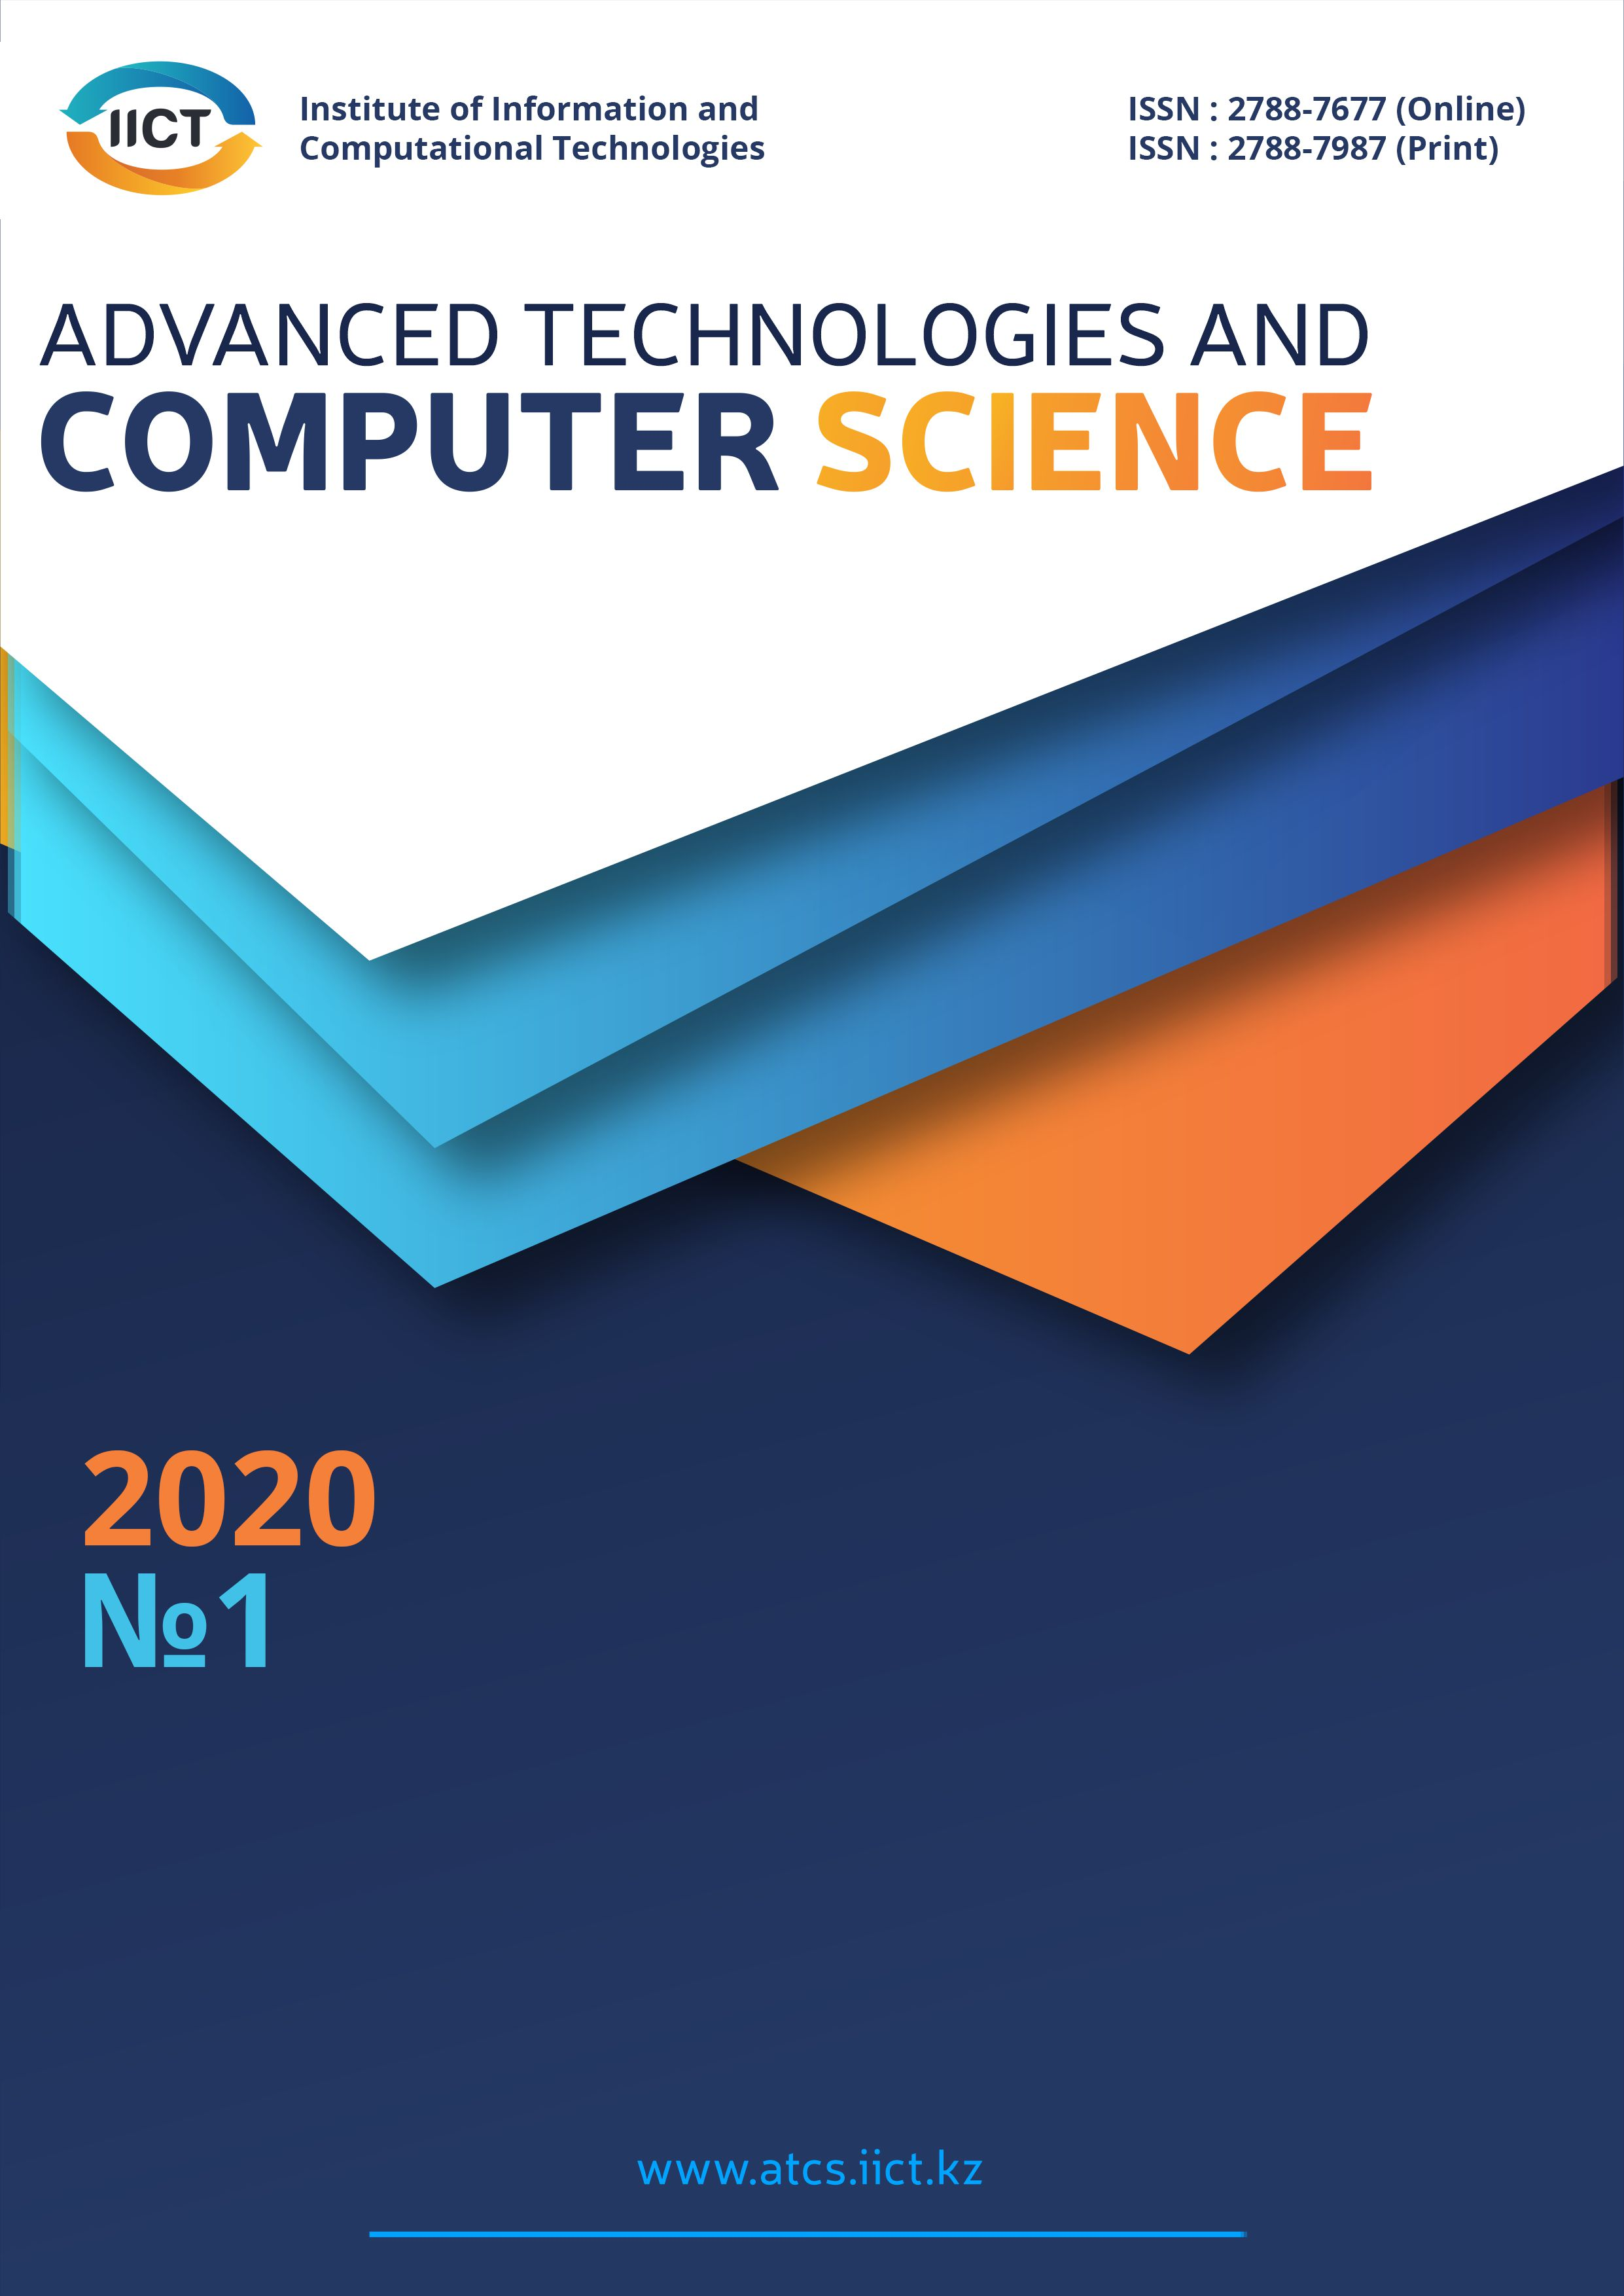 View No. 1 (2020): Advanced technologies and computer science